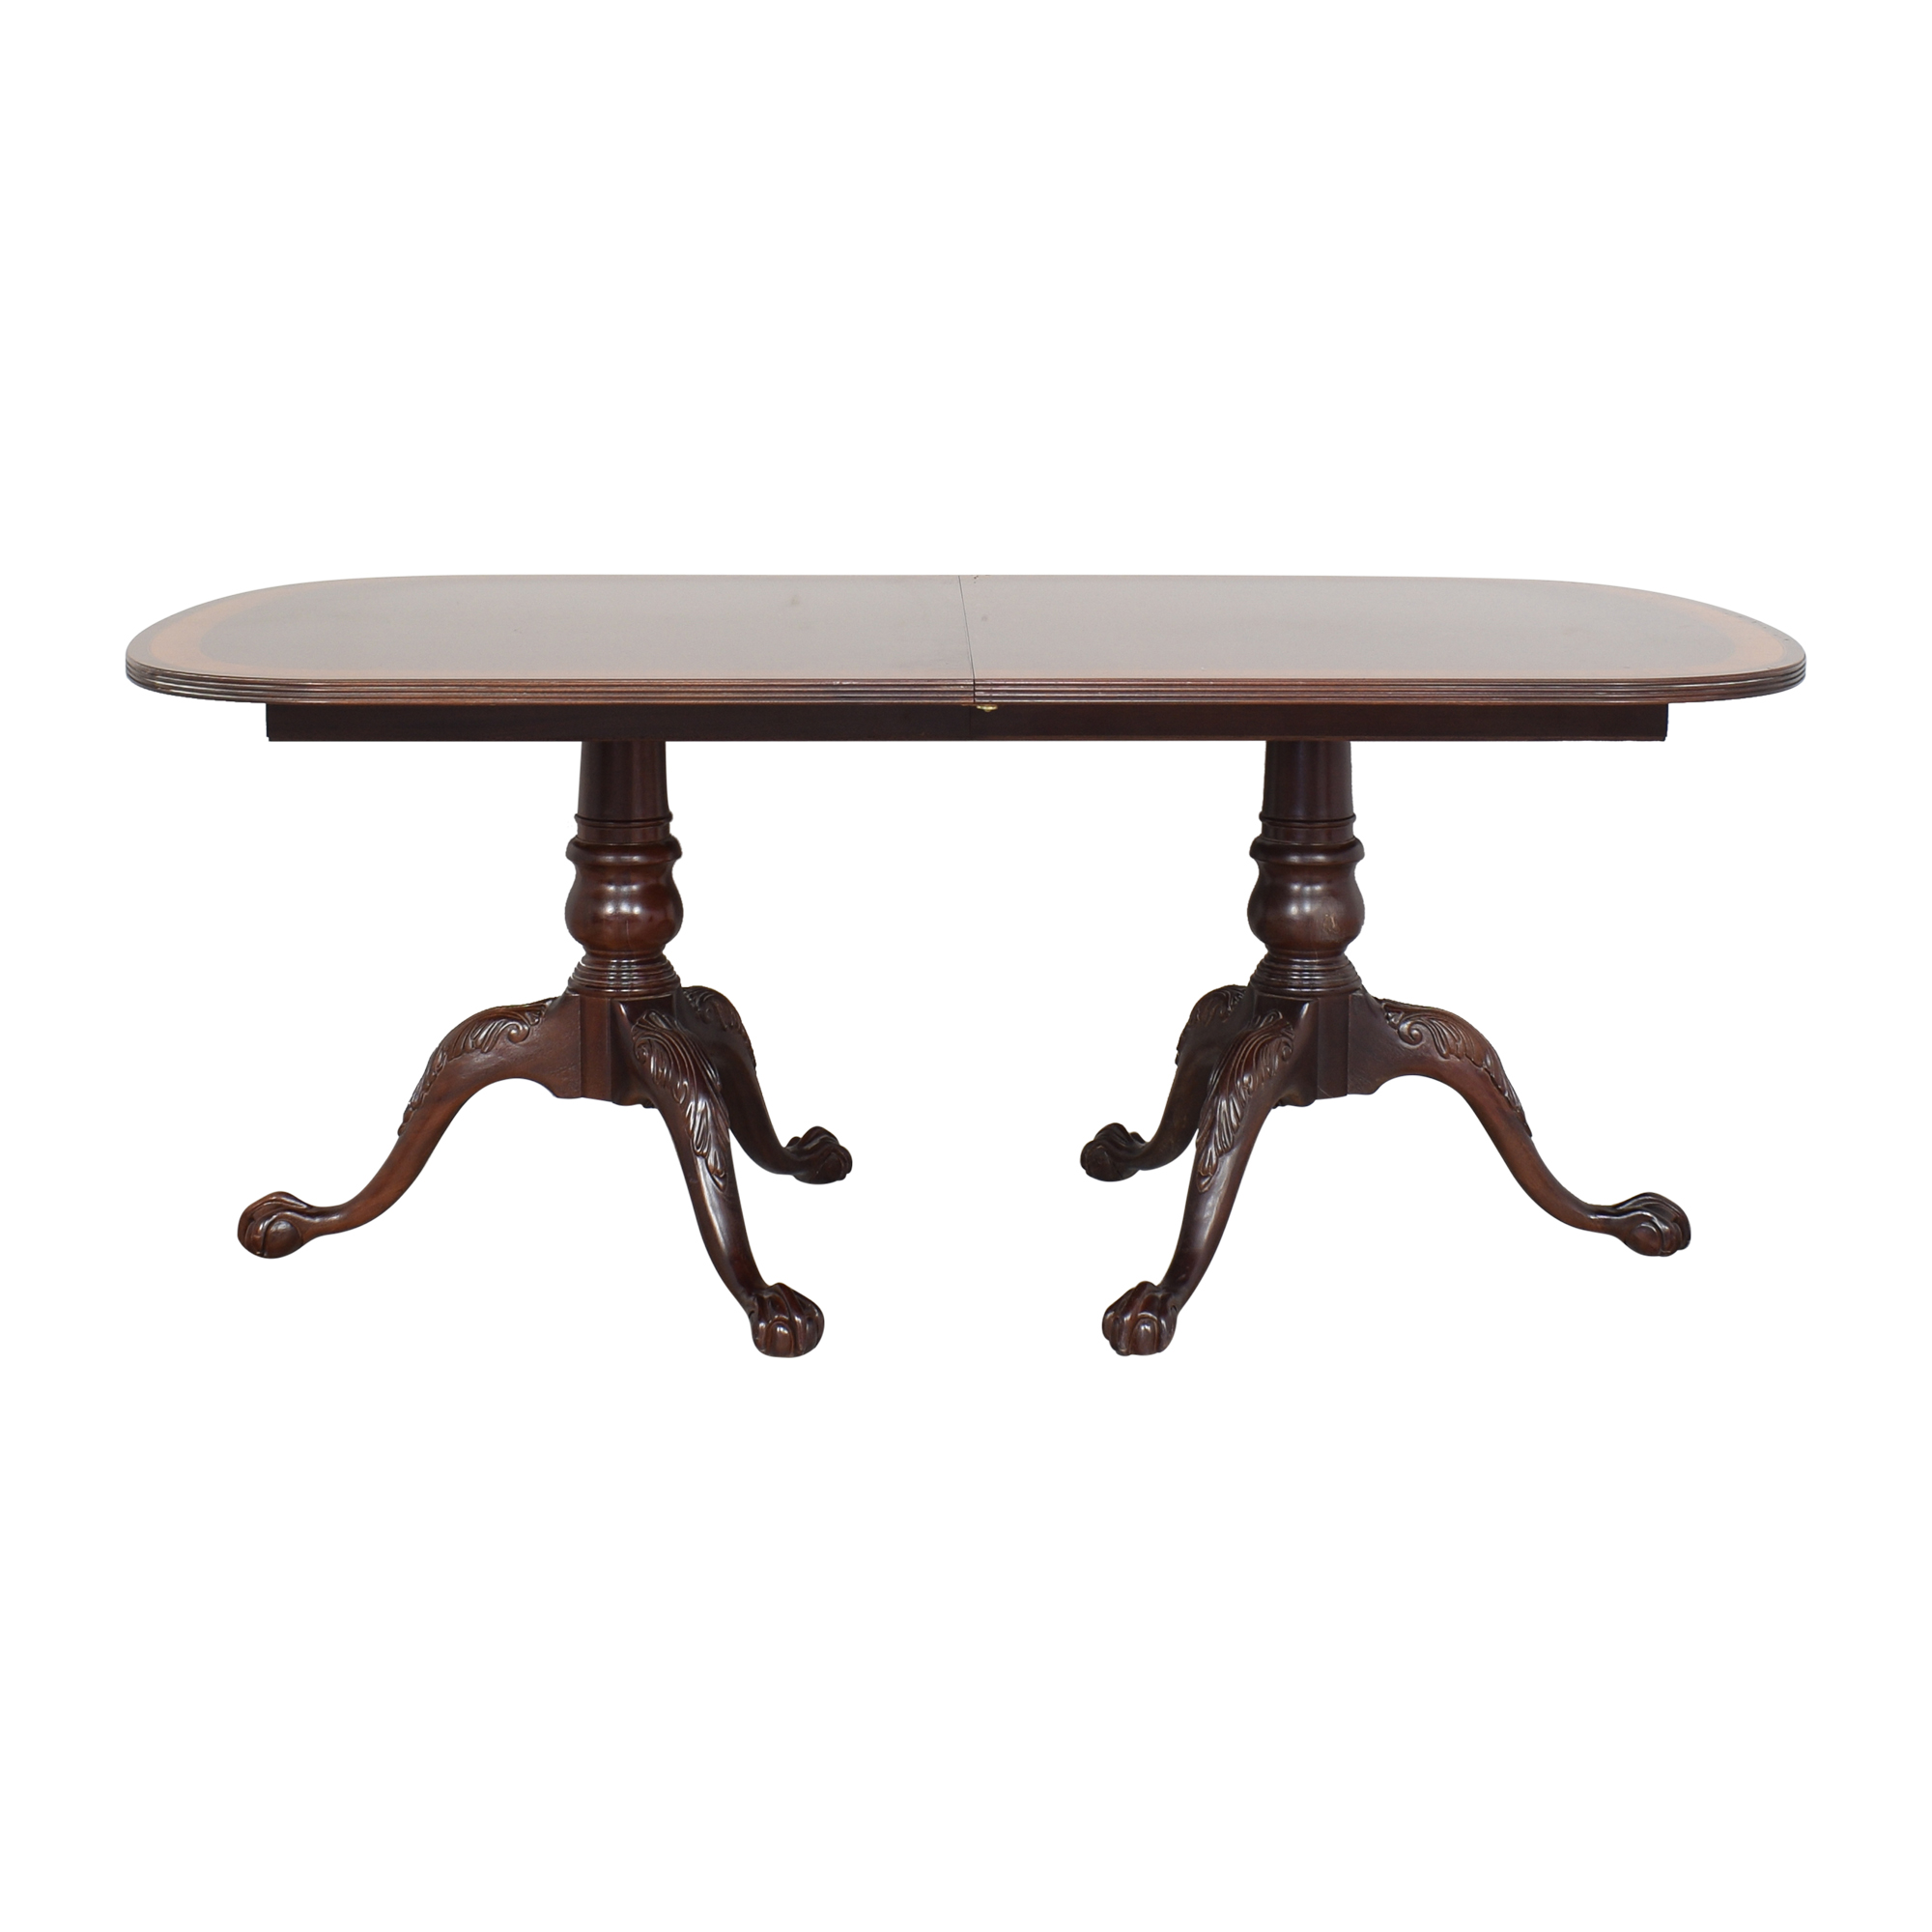 Ethan Allen Ethan Allen 18th Century Extendable Dining Table dimensions